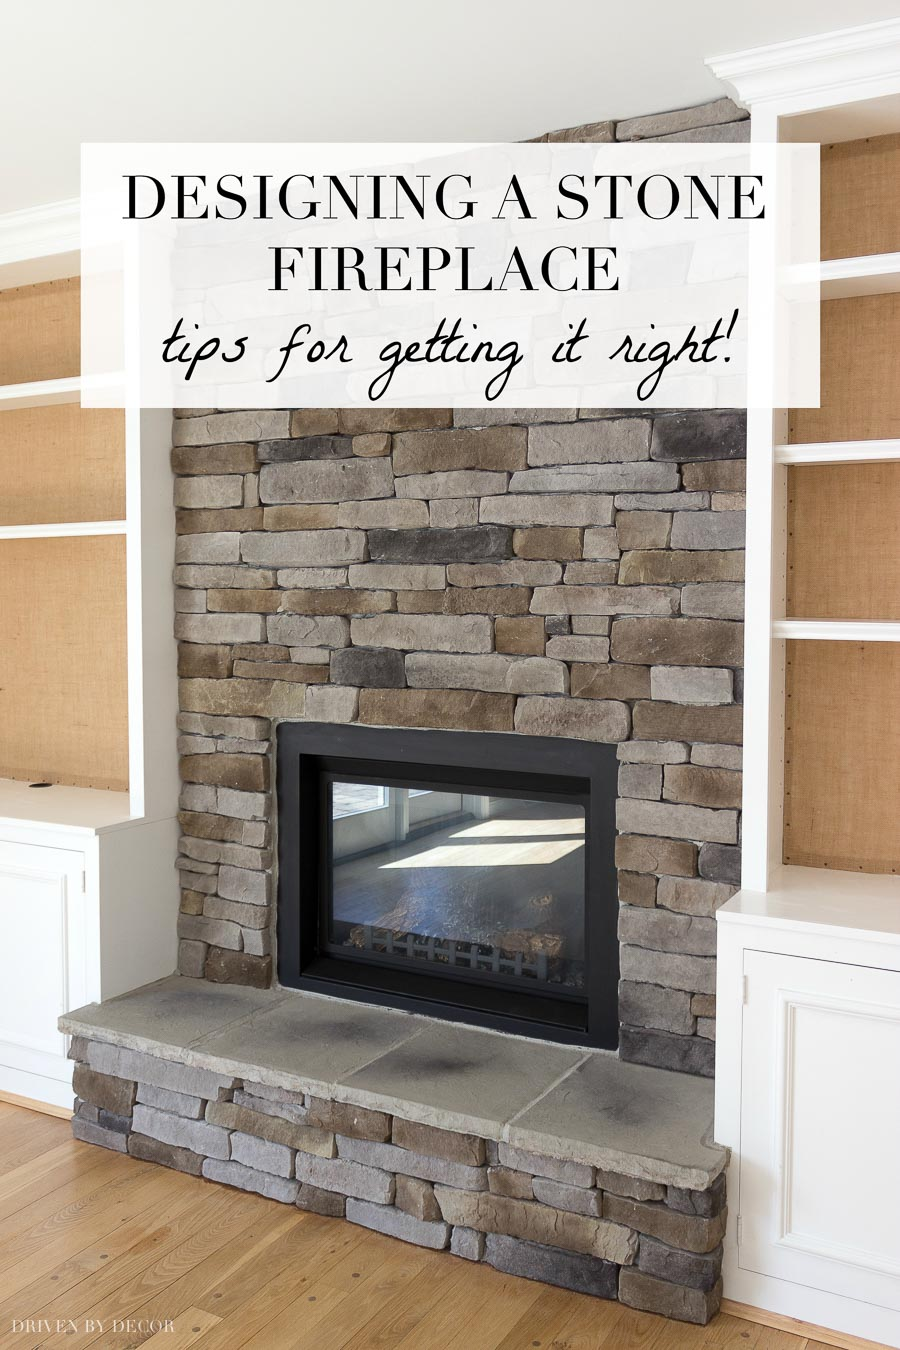 Designing A Stone Fireplace Tips For Getting It Right Driven By Decor